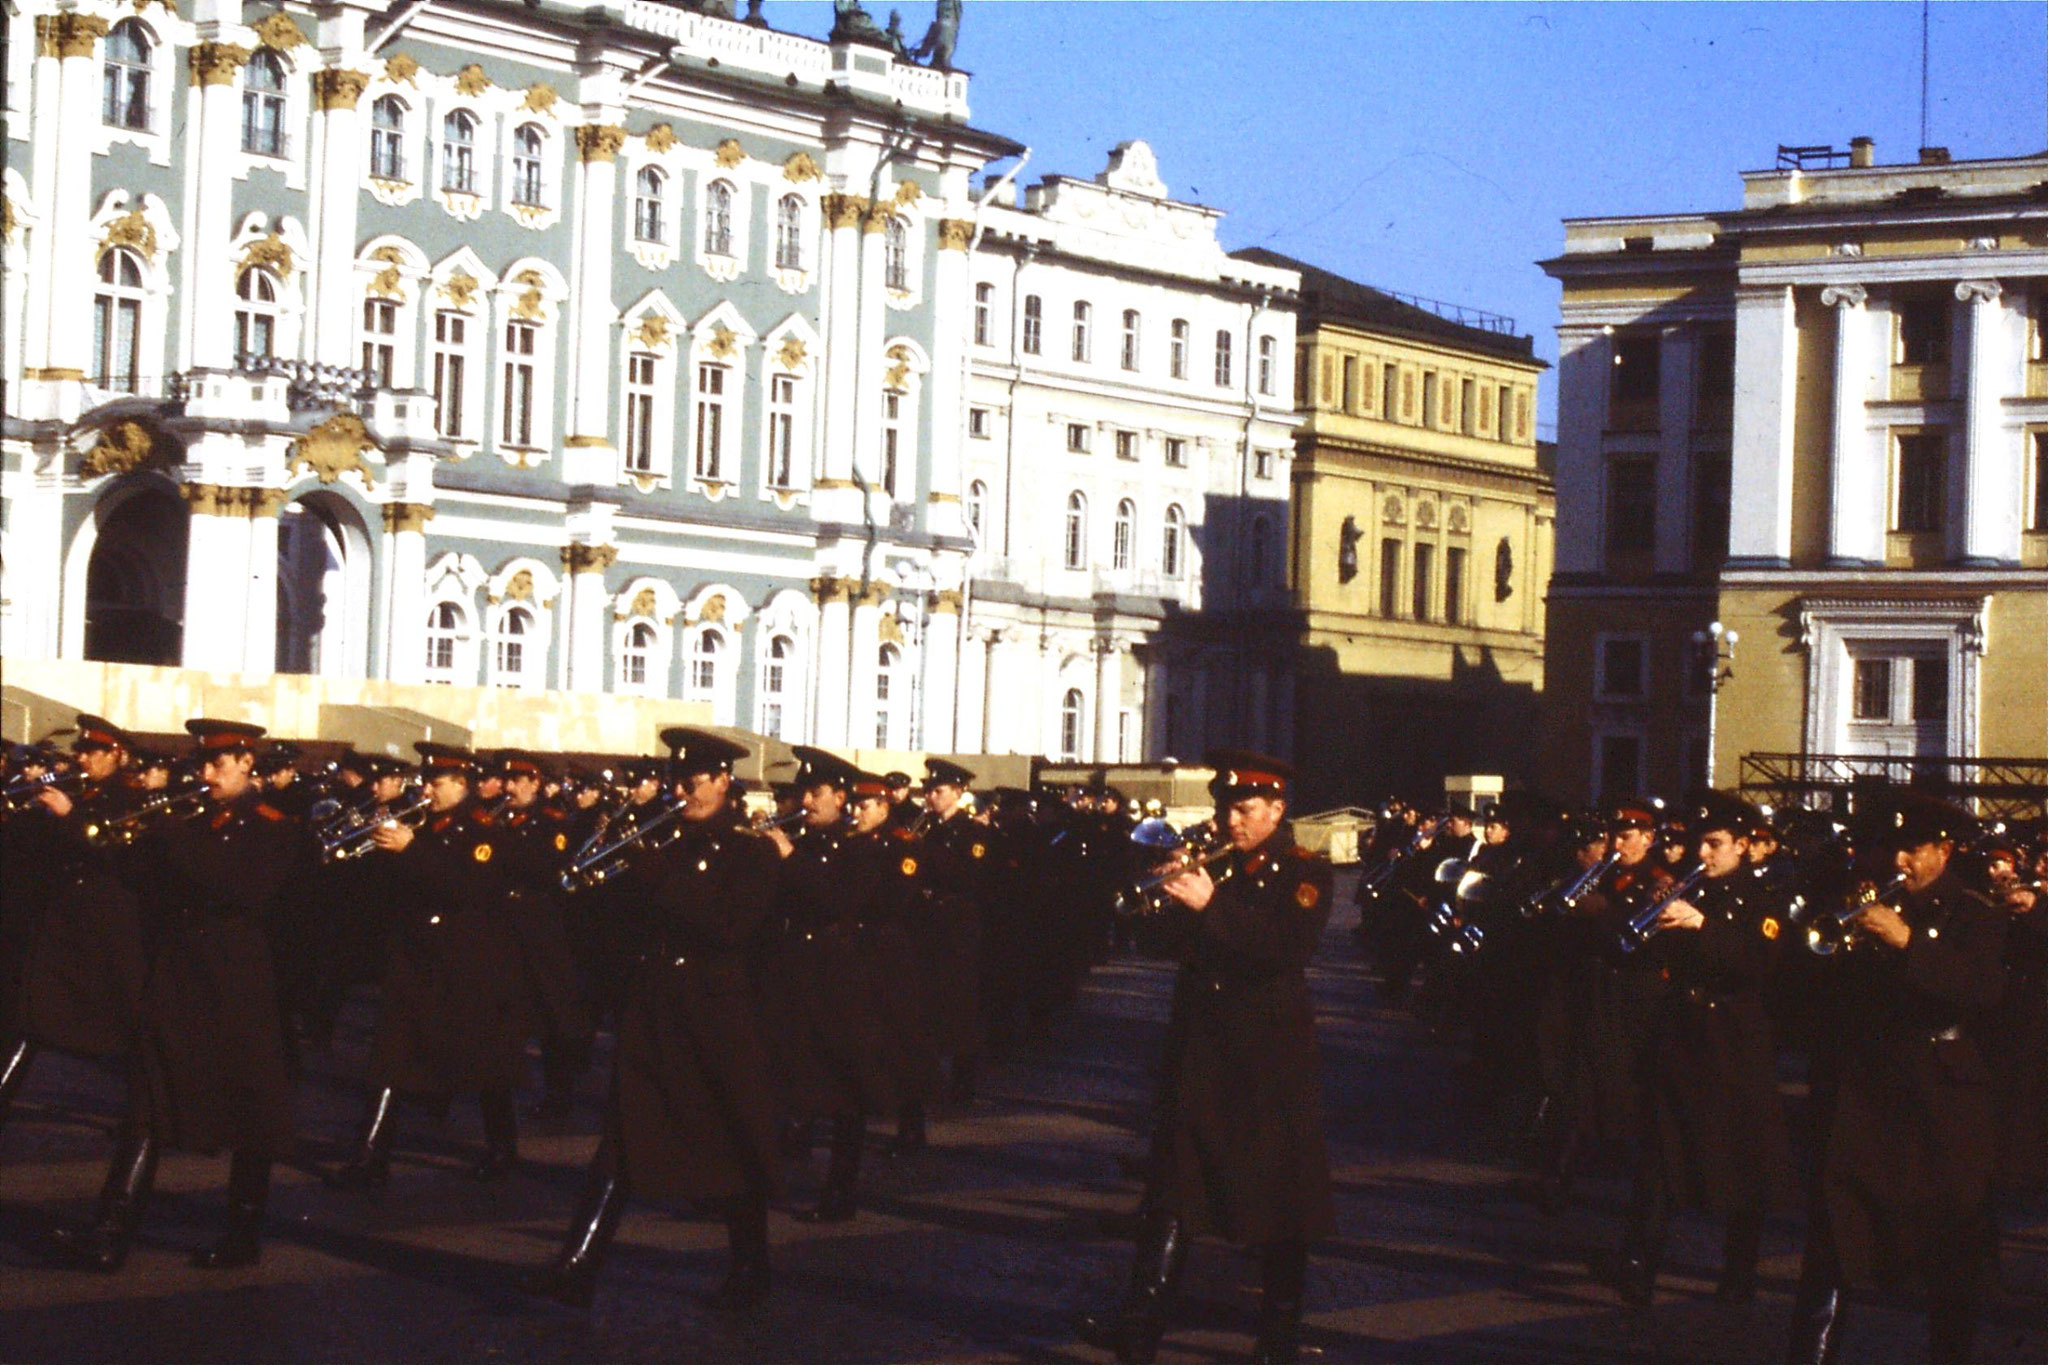 13/10/1988: 19:  Leningrad band in front of Hermitage